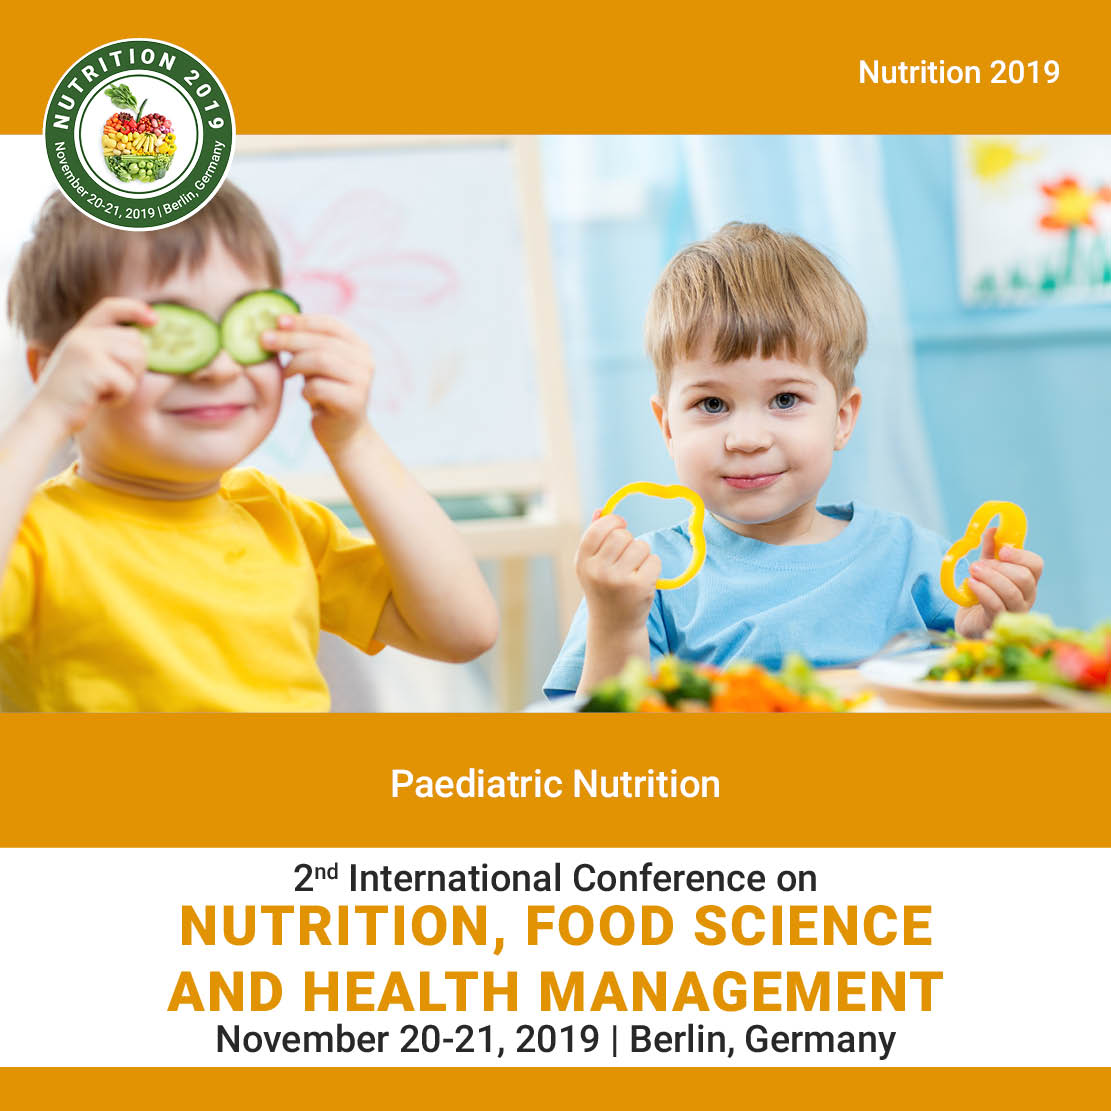 Paediatric Nutrition and Child Obesity Photo